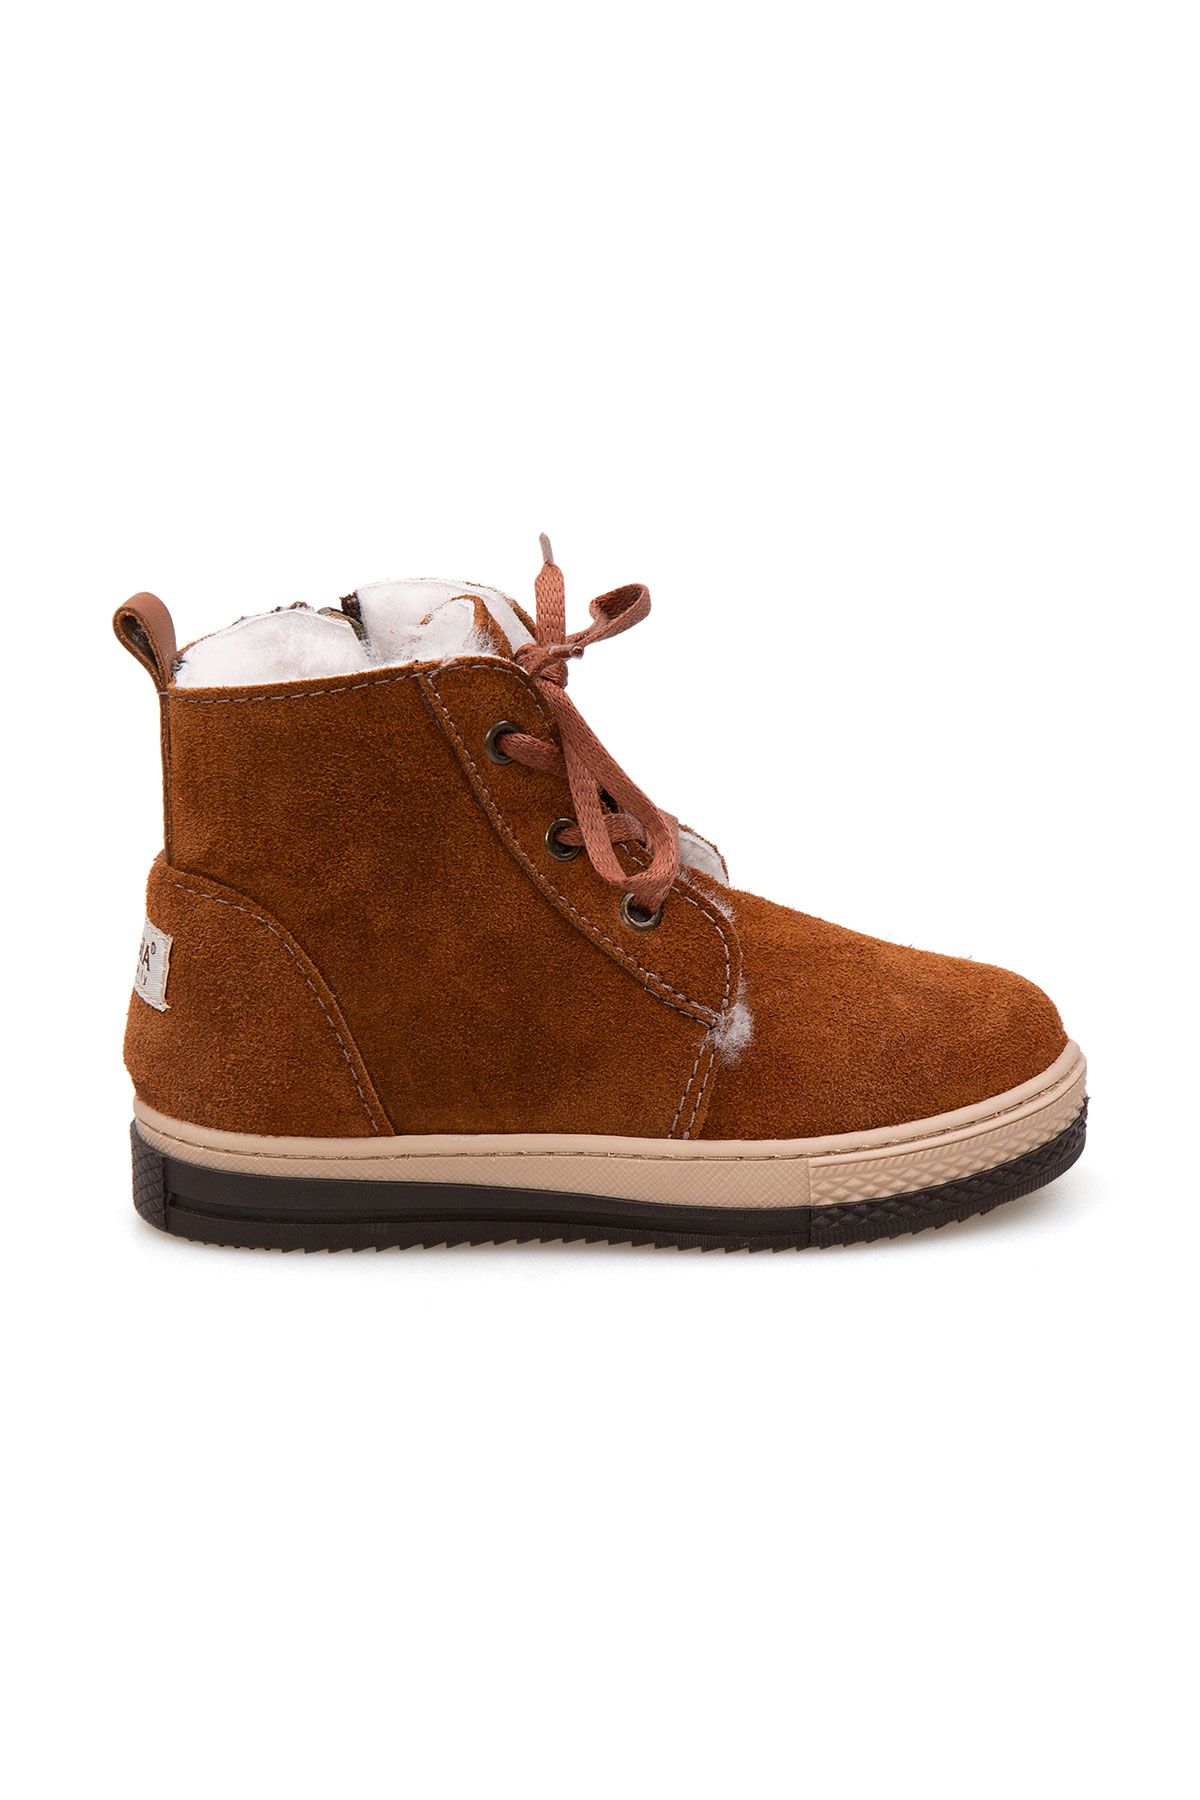 Pegia Kids Zippered Shearling Boots 186033 Ginger